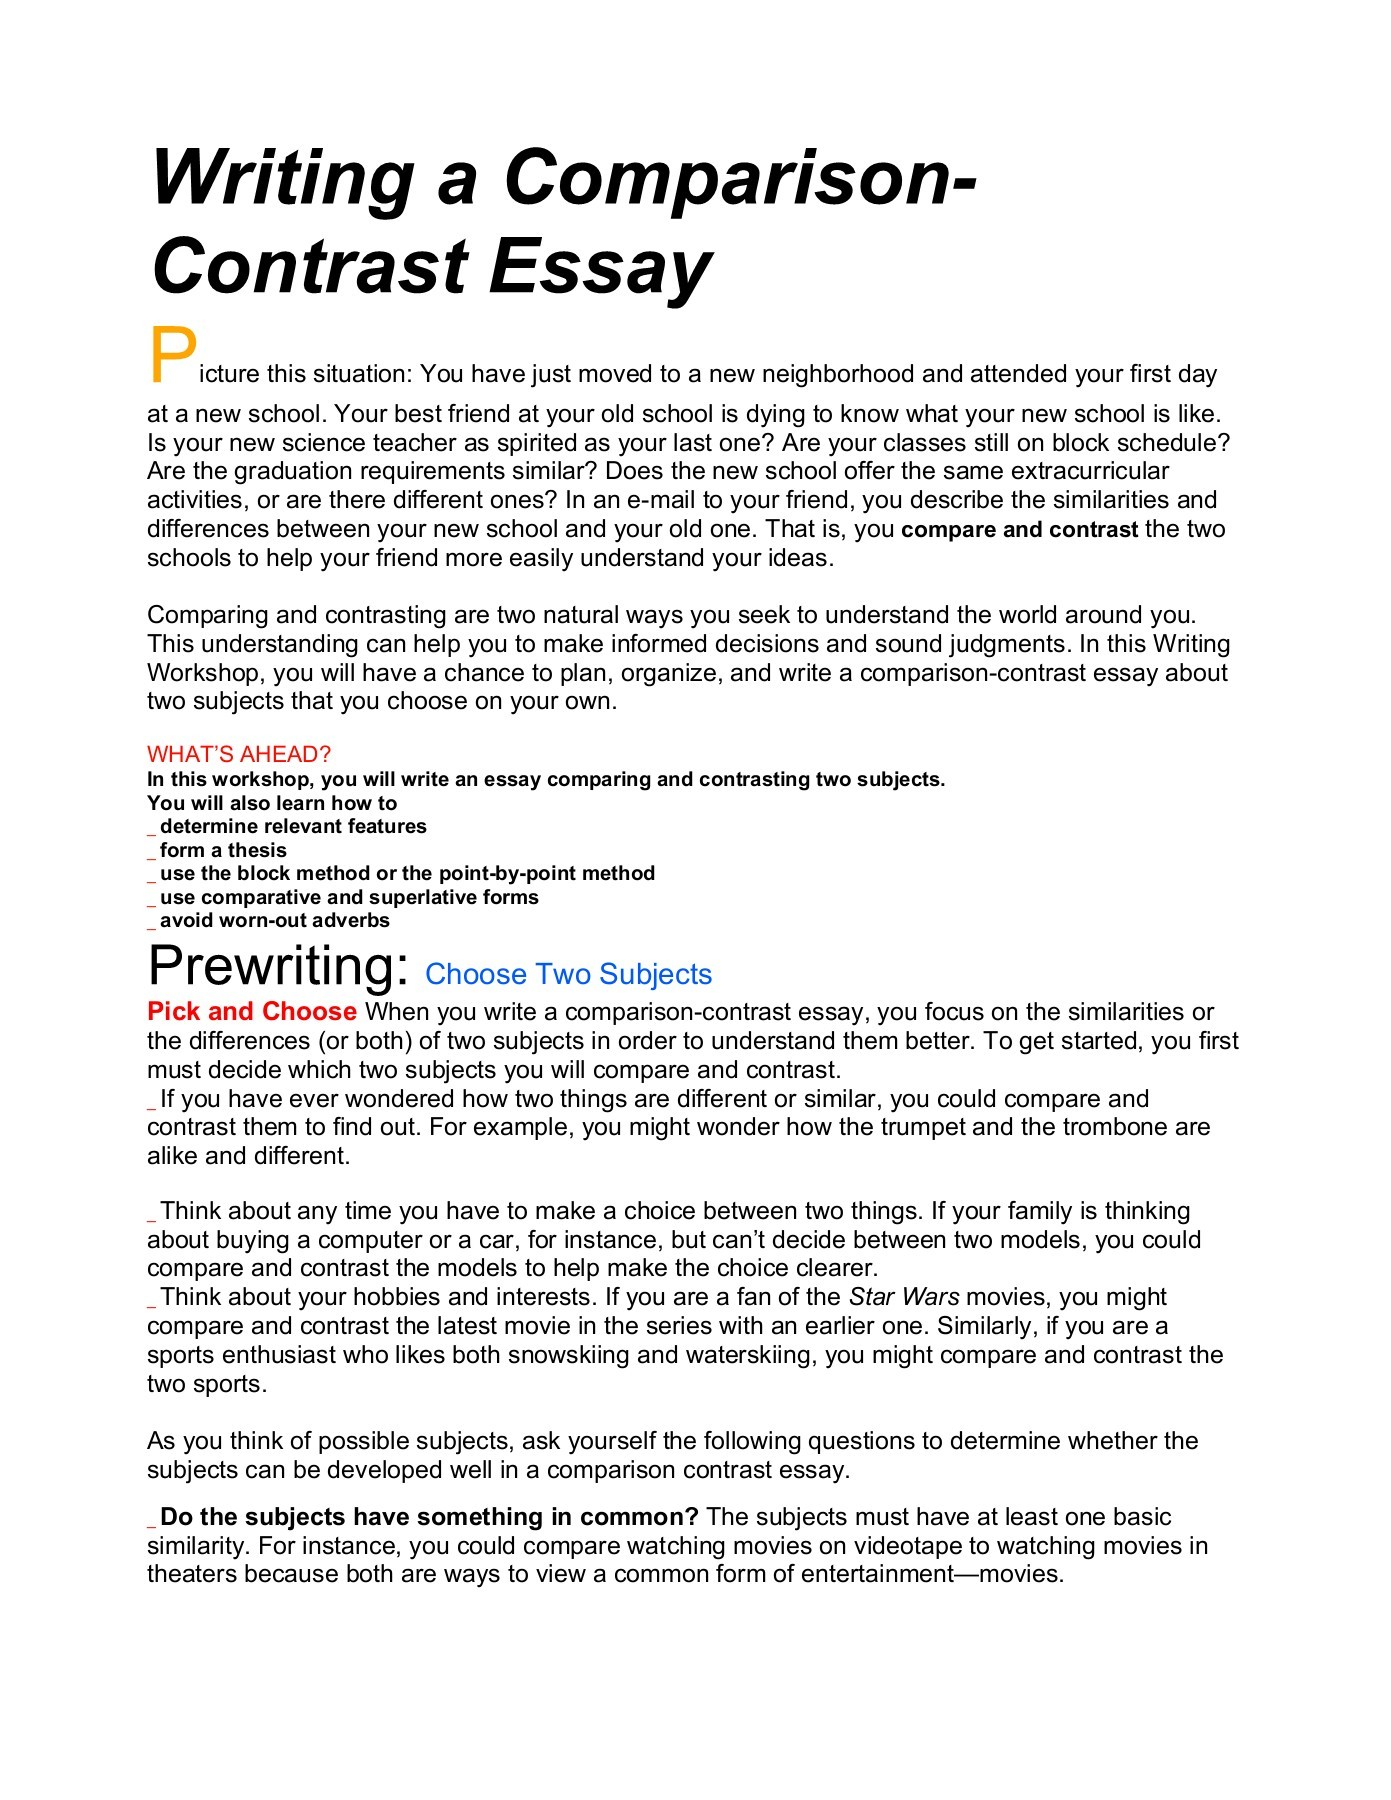 003 How To Start Comparative Essay Example Beautiful A Writing Comparison And Contrast Begin Compare Thesis Full